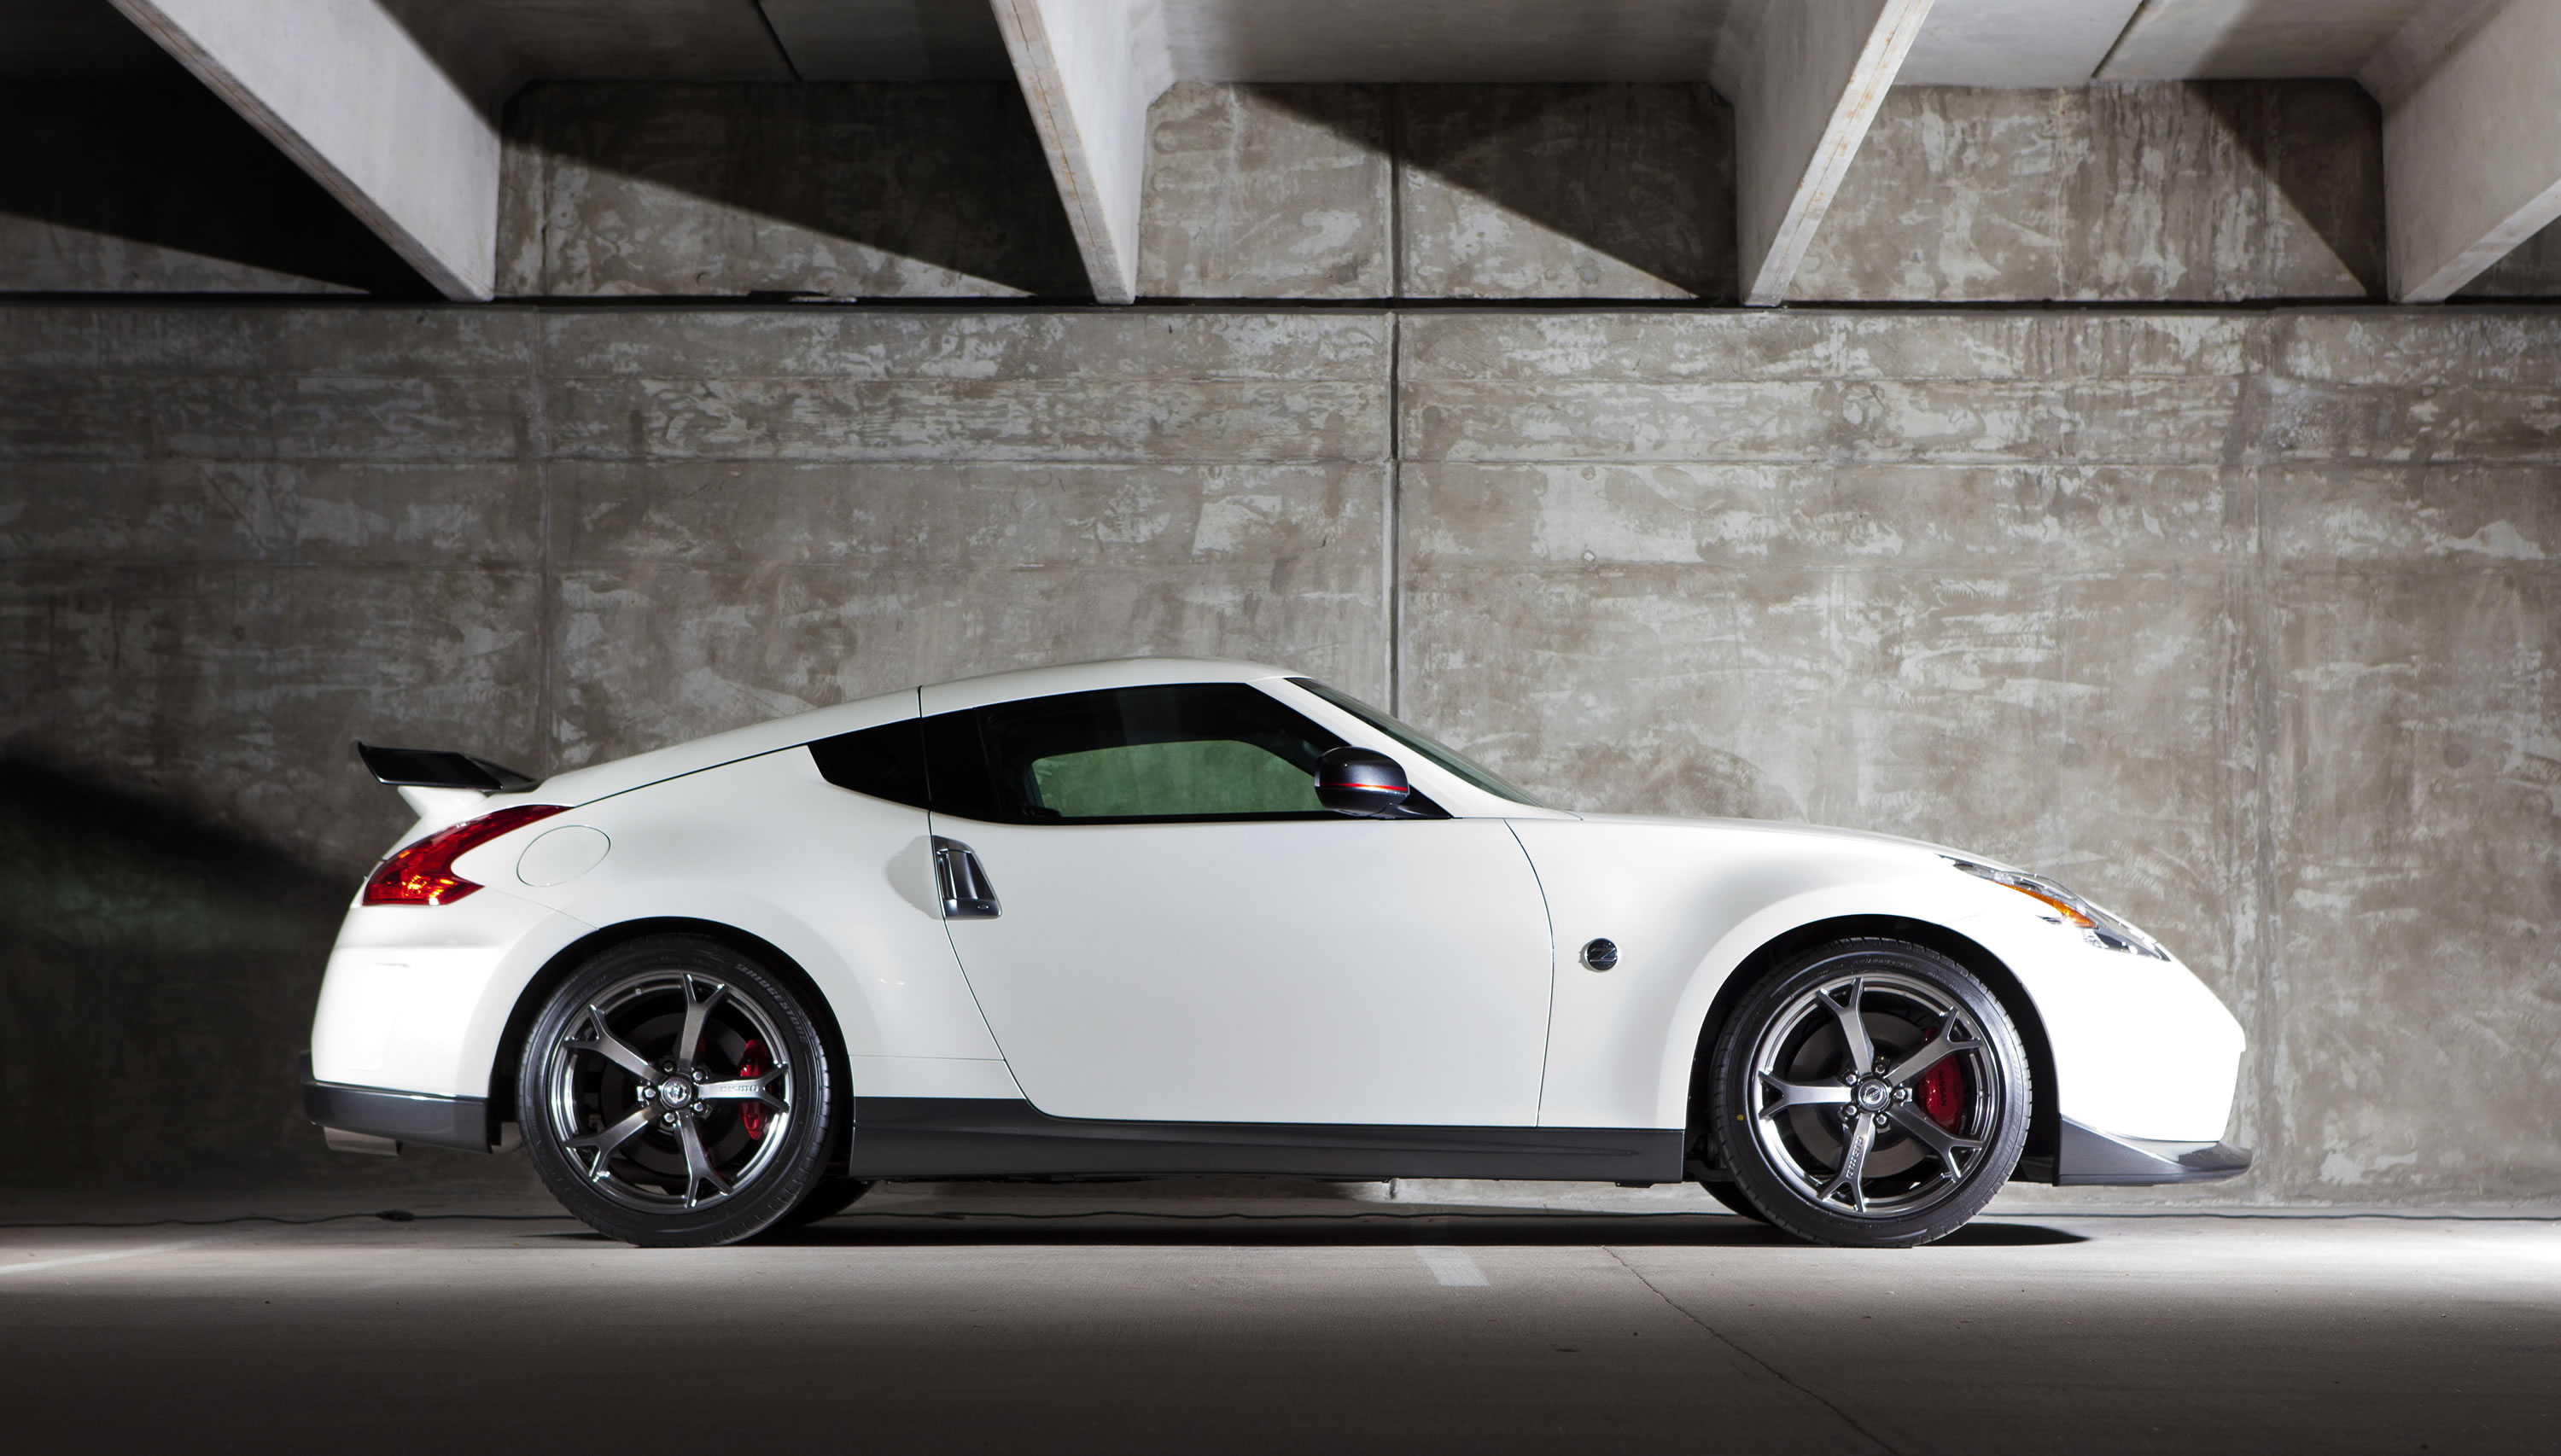 2014 Nissan 370Z NISMO Photos, Specs And Review